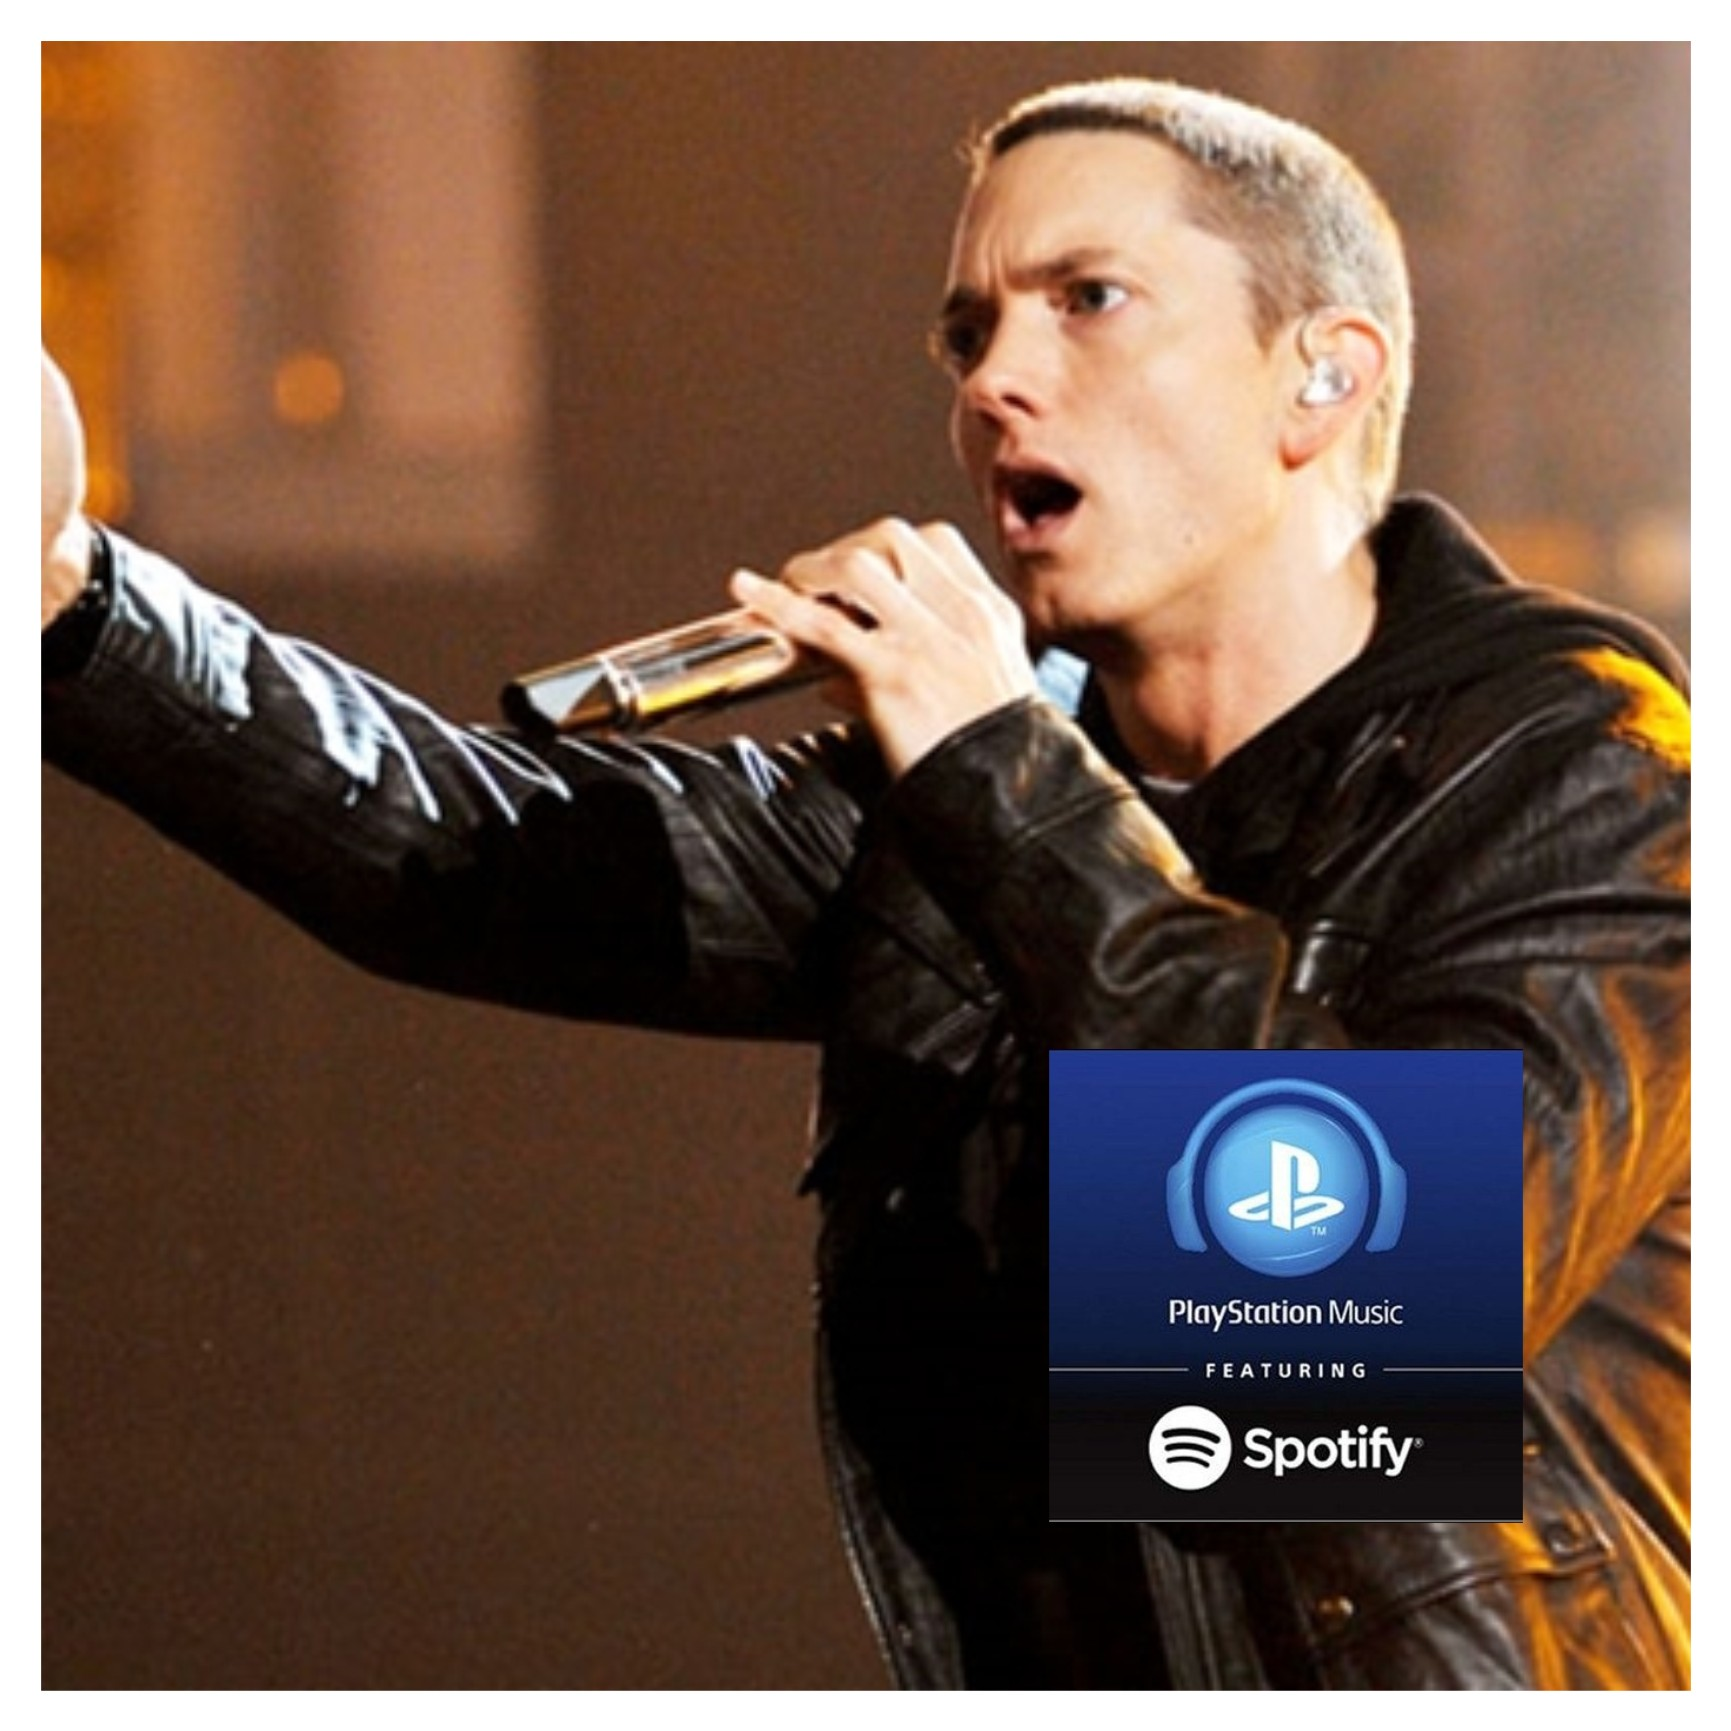 eminem playstation music, eminem spotify, eminem most streamed artist, eminem classifica spotify